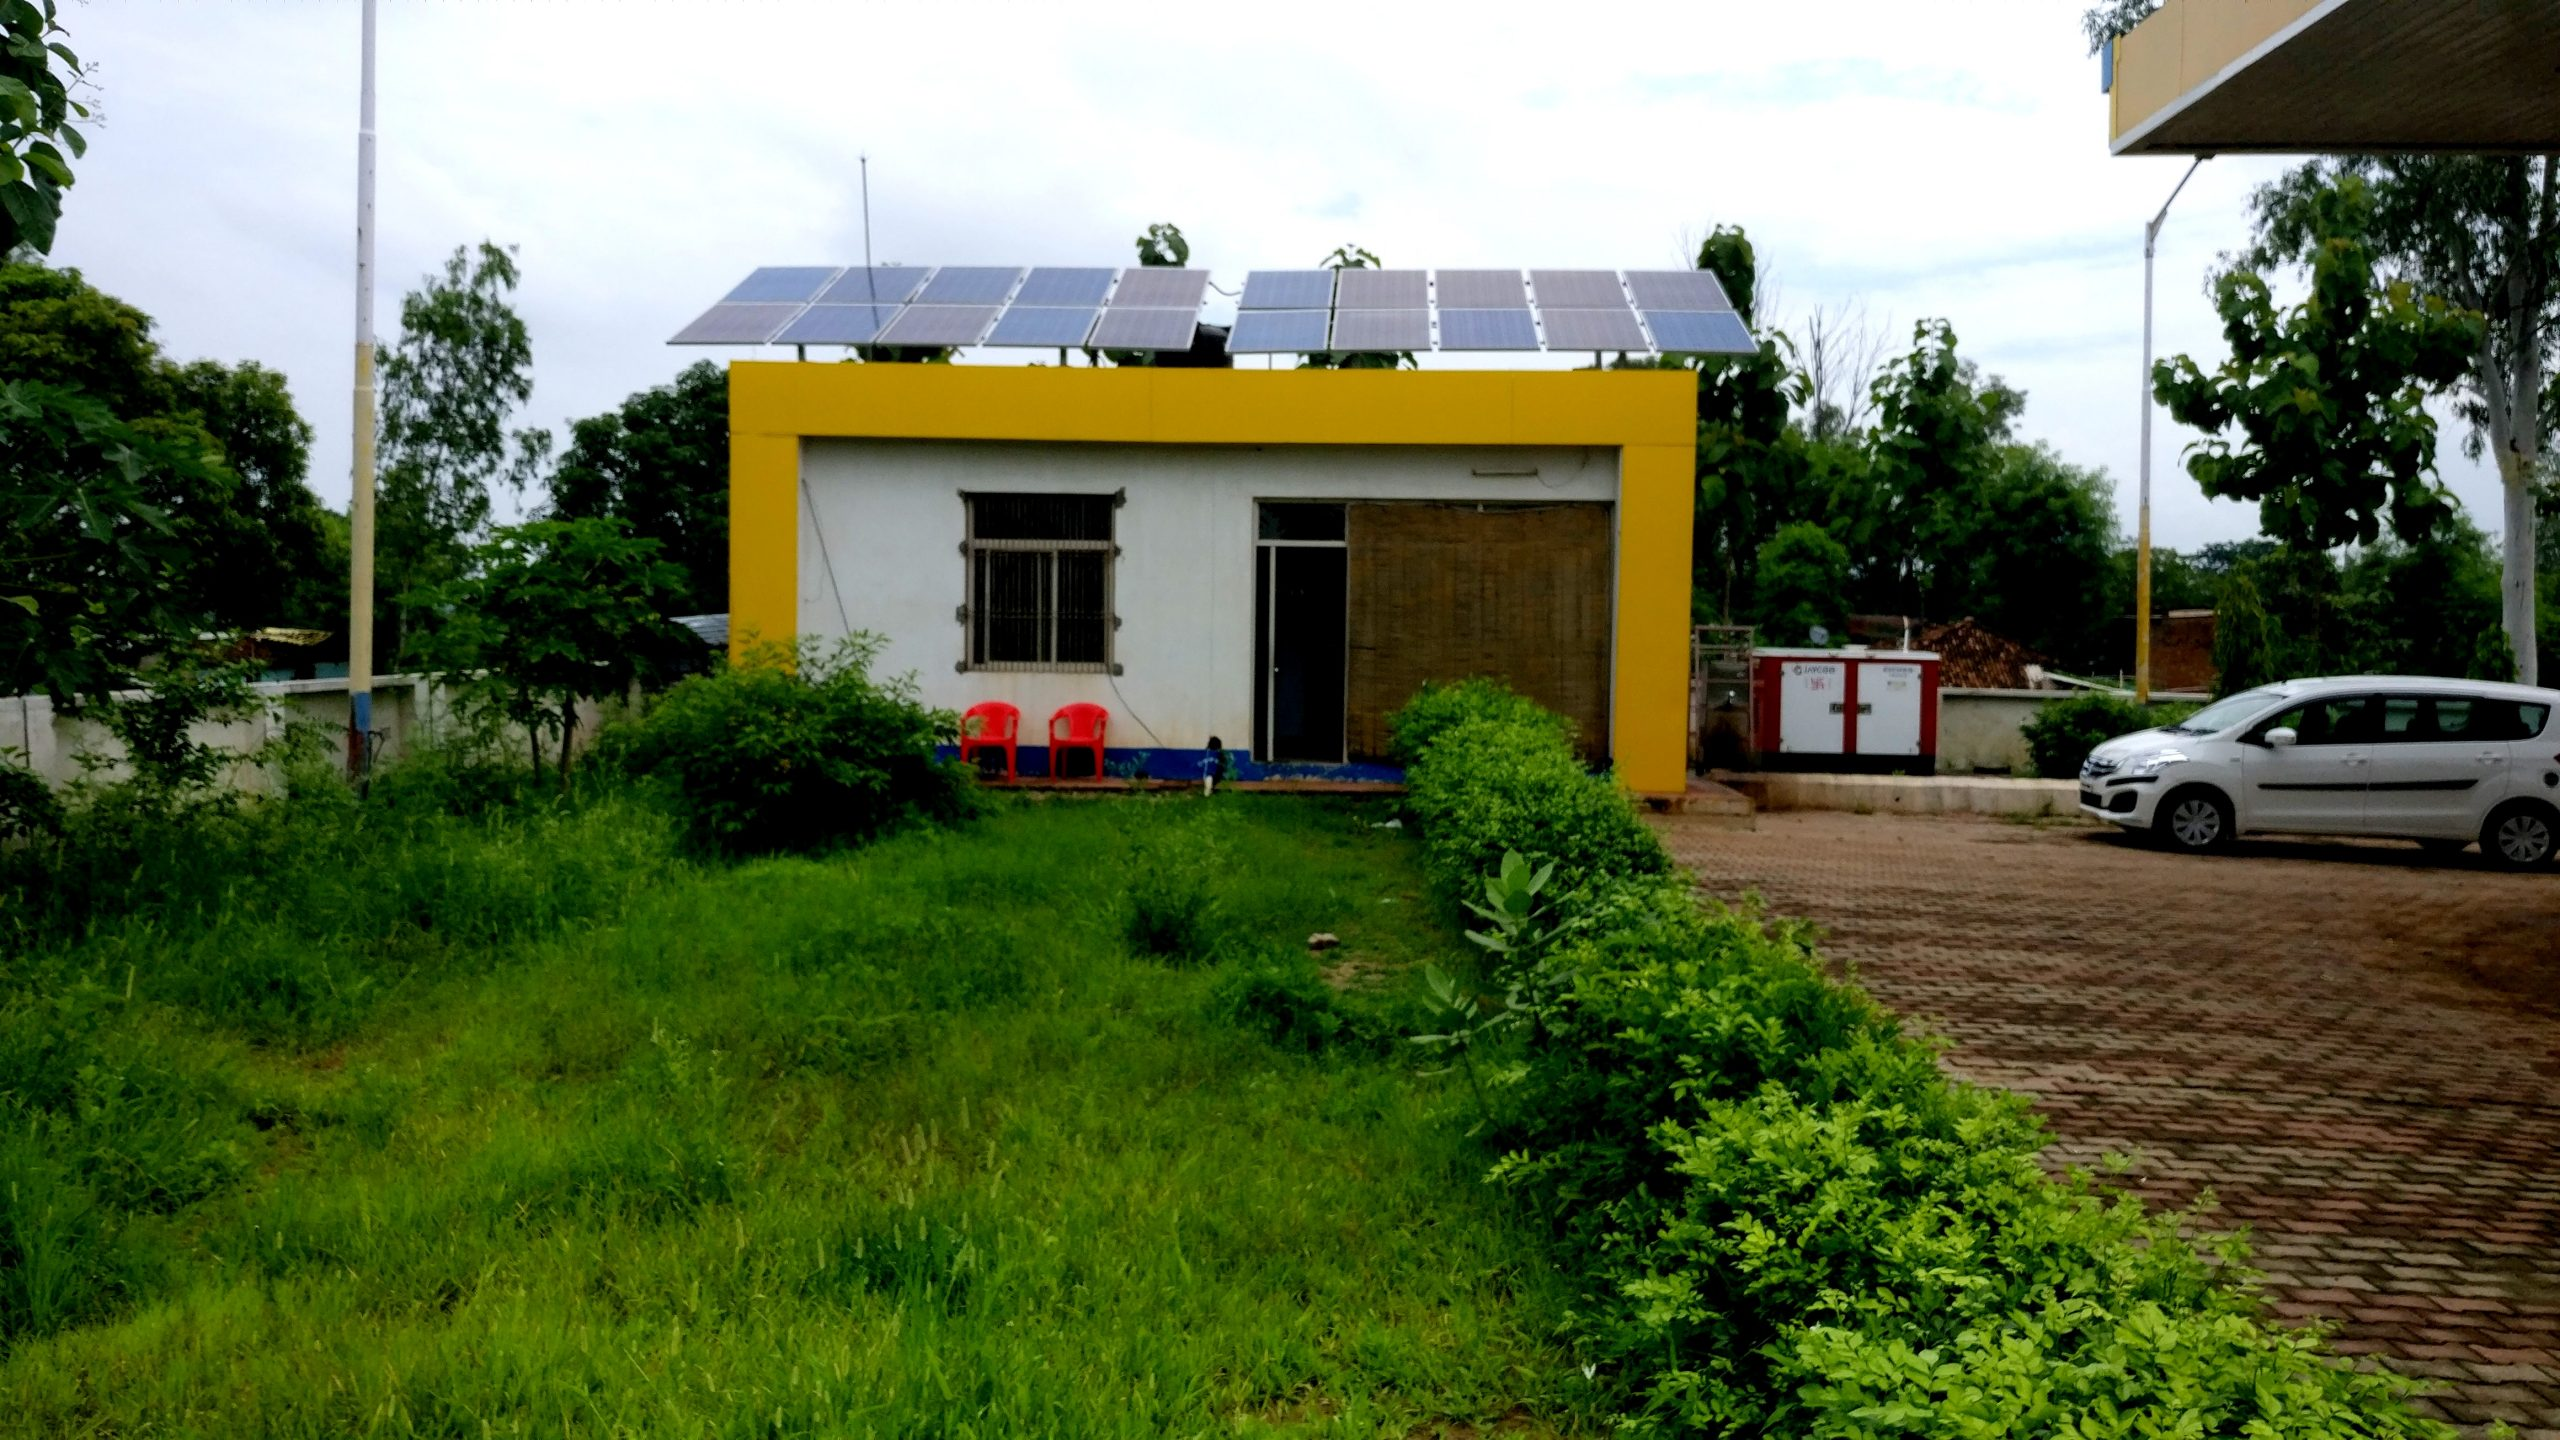 6 kWp Off-Grid Rooftop Solar Power Plant